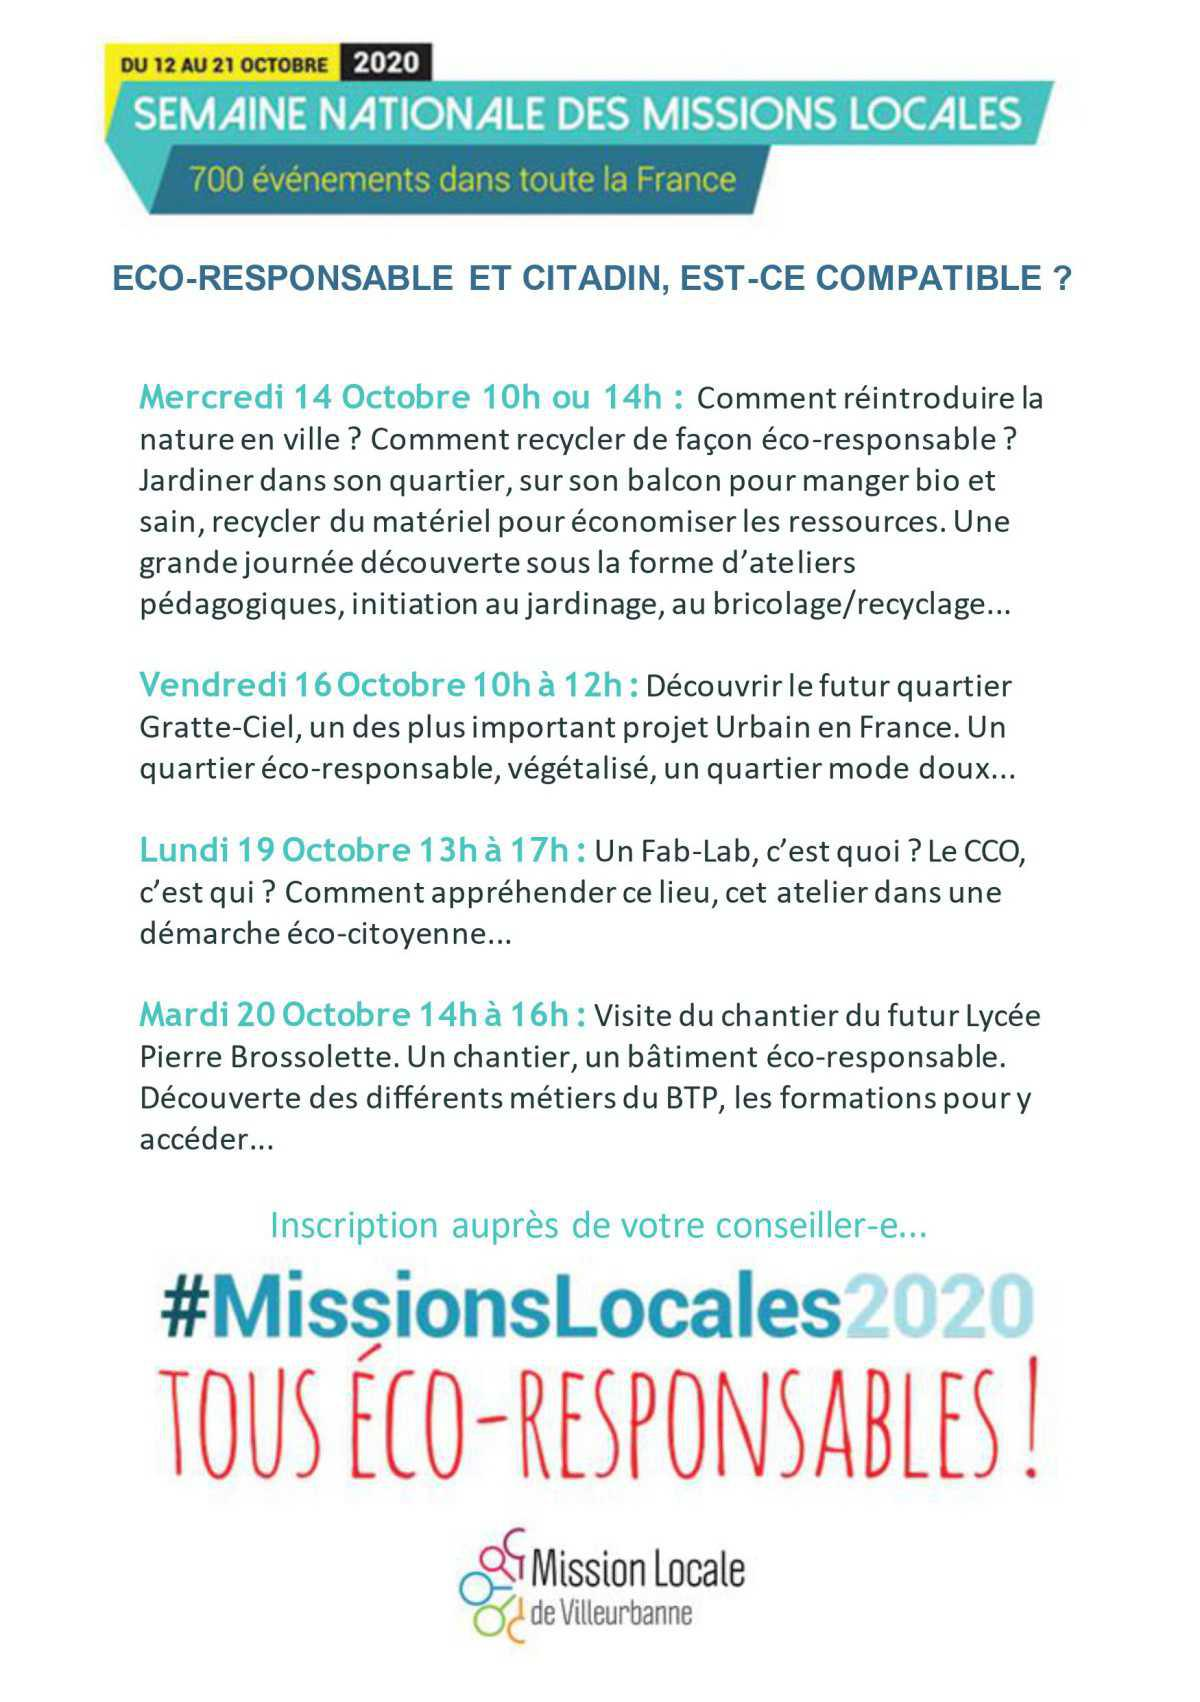 Semaine des Missions Locales - #MissionsLocales2020